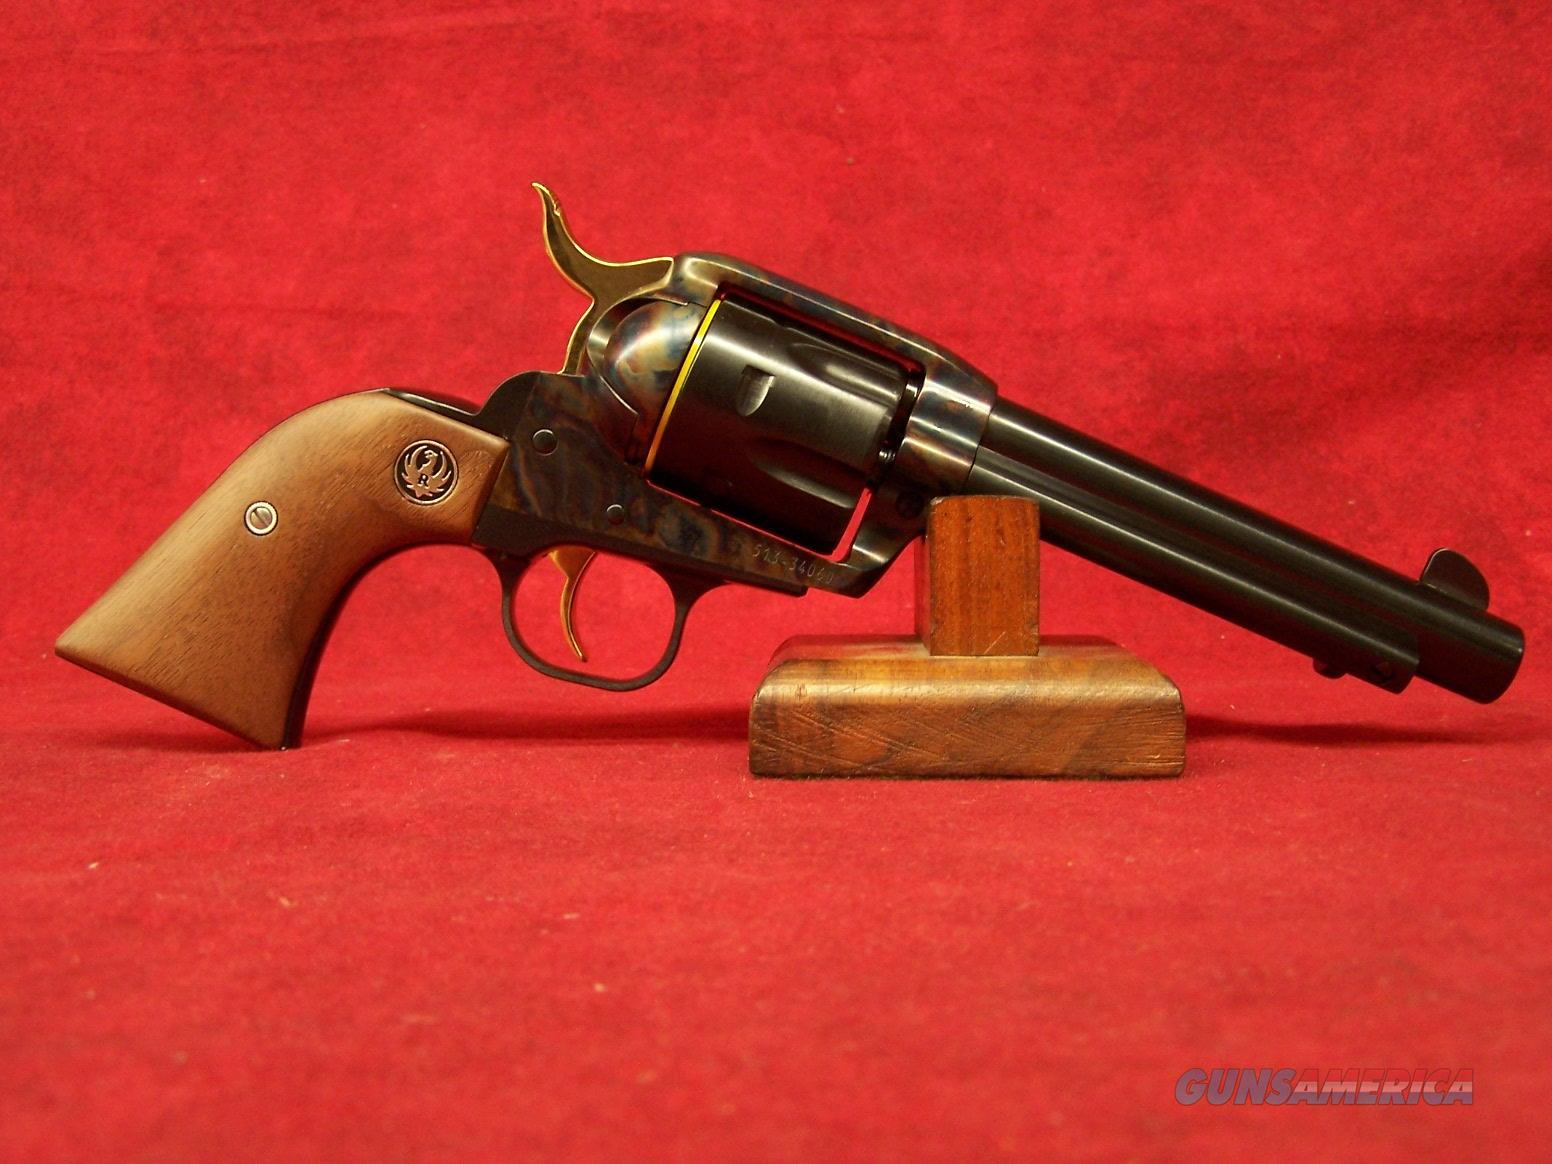 """Ruger New Vaquero Bobby Tyler Edition .357 Mag 5.5"""" Barrel Case Colored  Limited 1/500 (05164)  Guns > Pistols > Ruger Single Action Revolvers > Cowboy Action"""